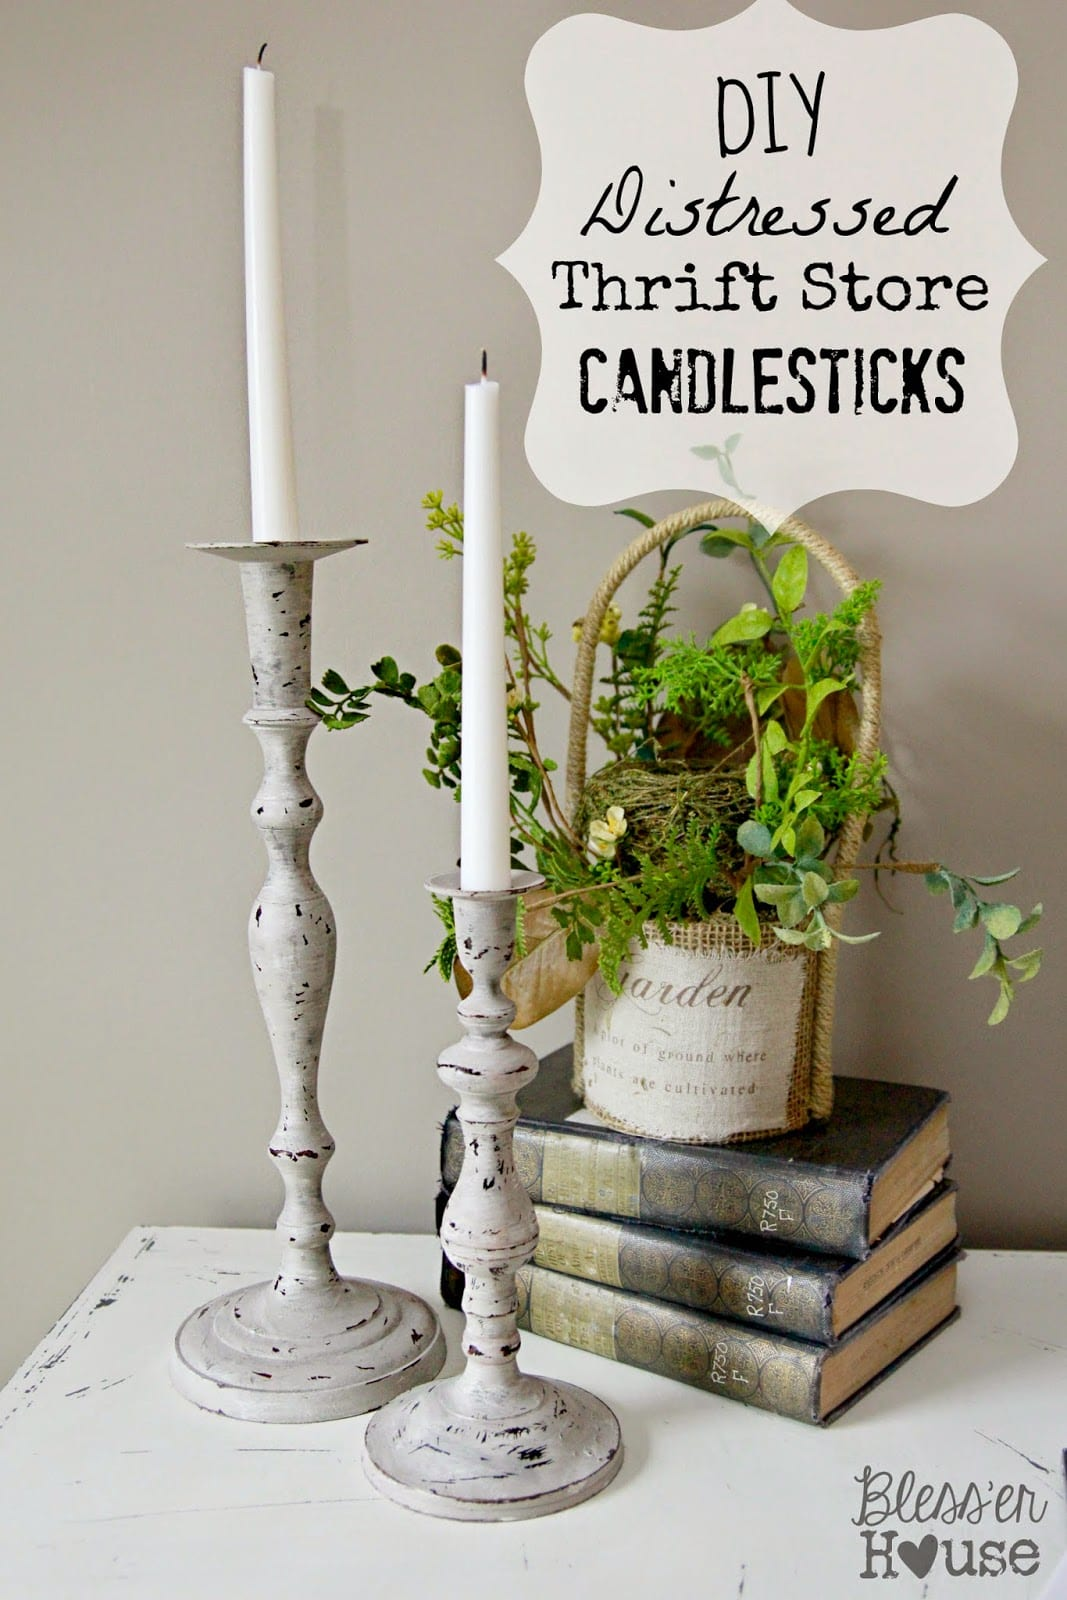 DIY Distressed Thrift Store Candlesticks